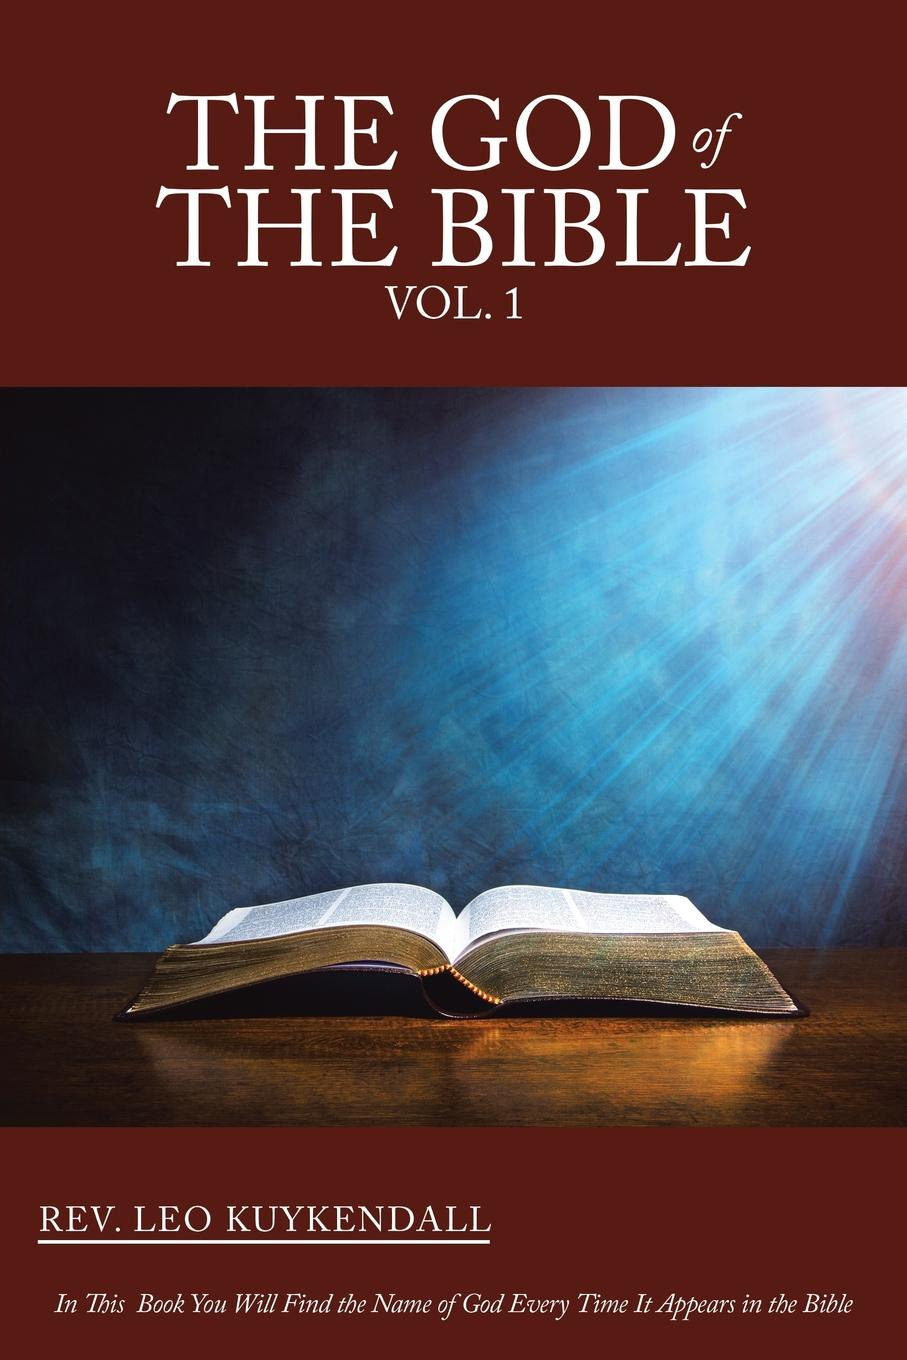 Leo Kuykendall The God of the Bible Vol. 1. In This Book You Will Find Name Every Time It Appears in